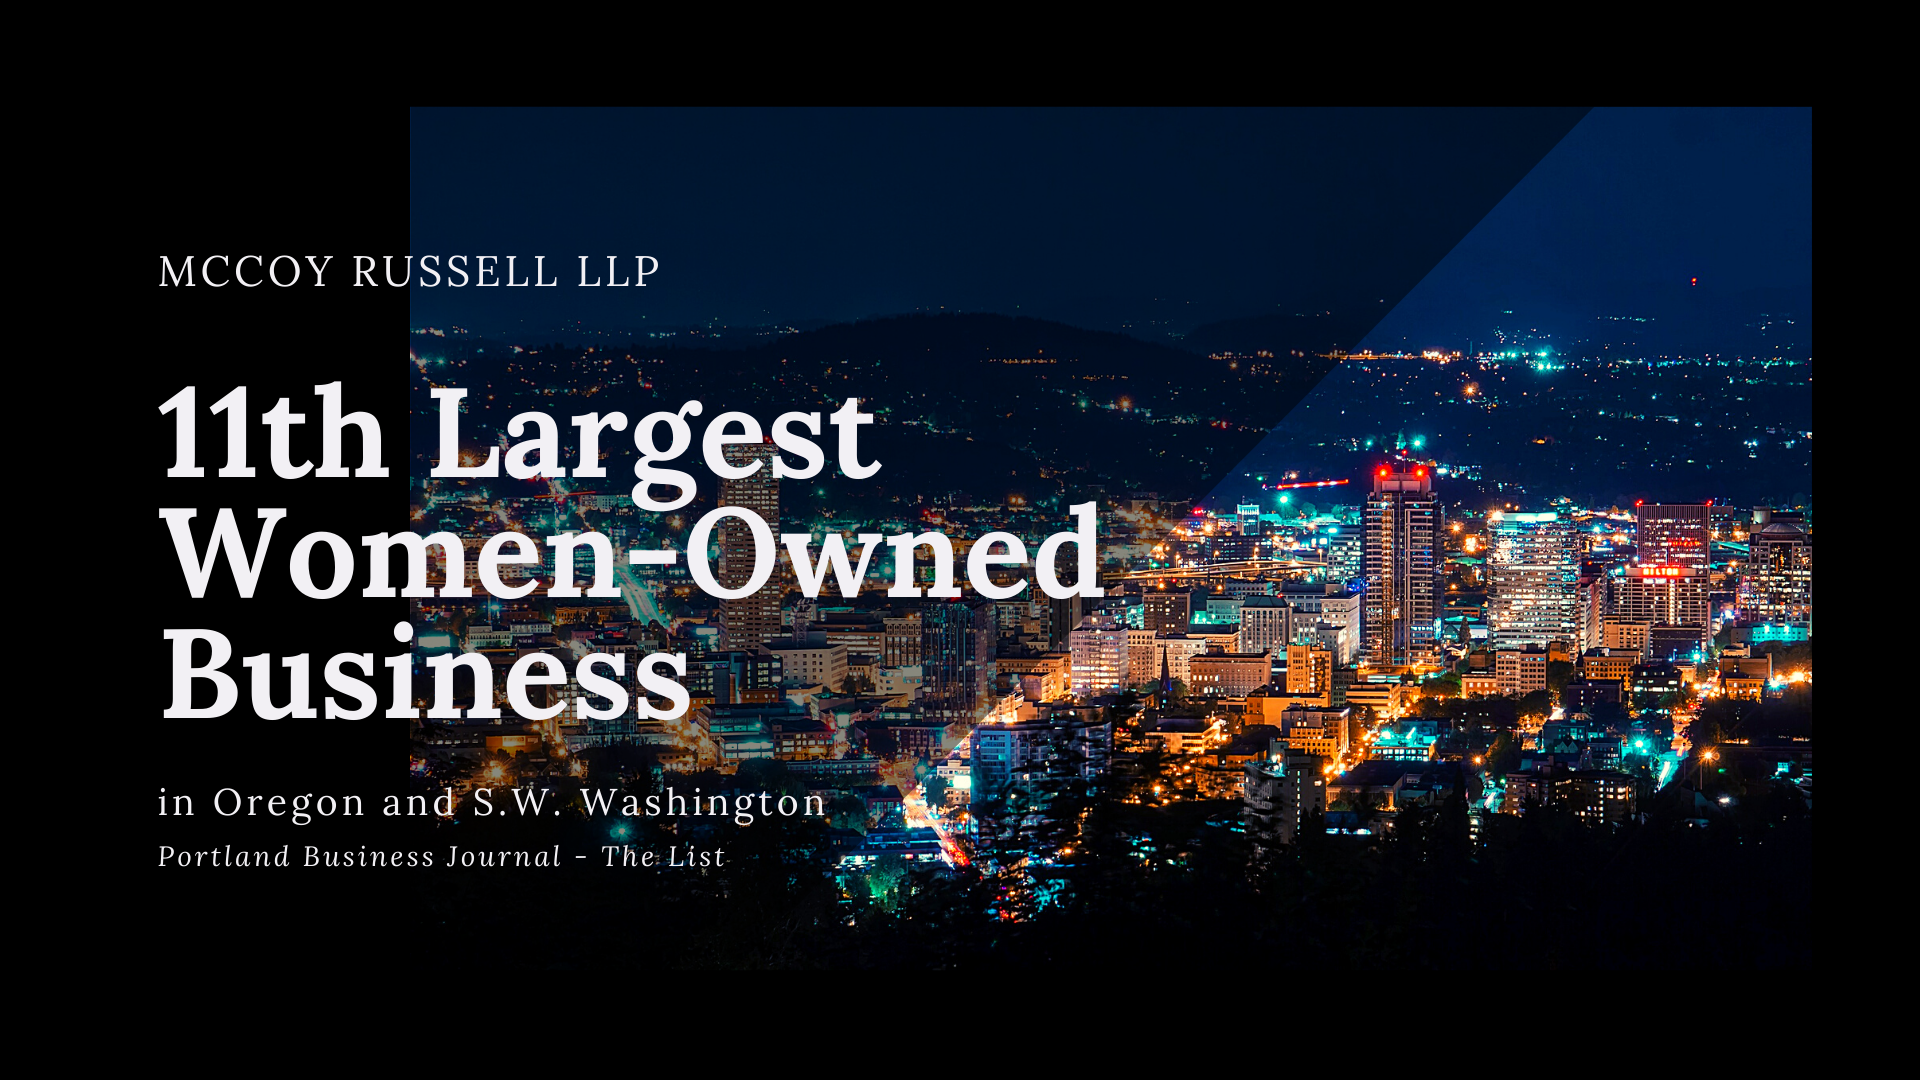 McCoy Russell One of The Largest Women-Owned Businesses in Oregon & S.W. Washington